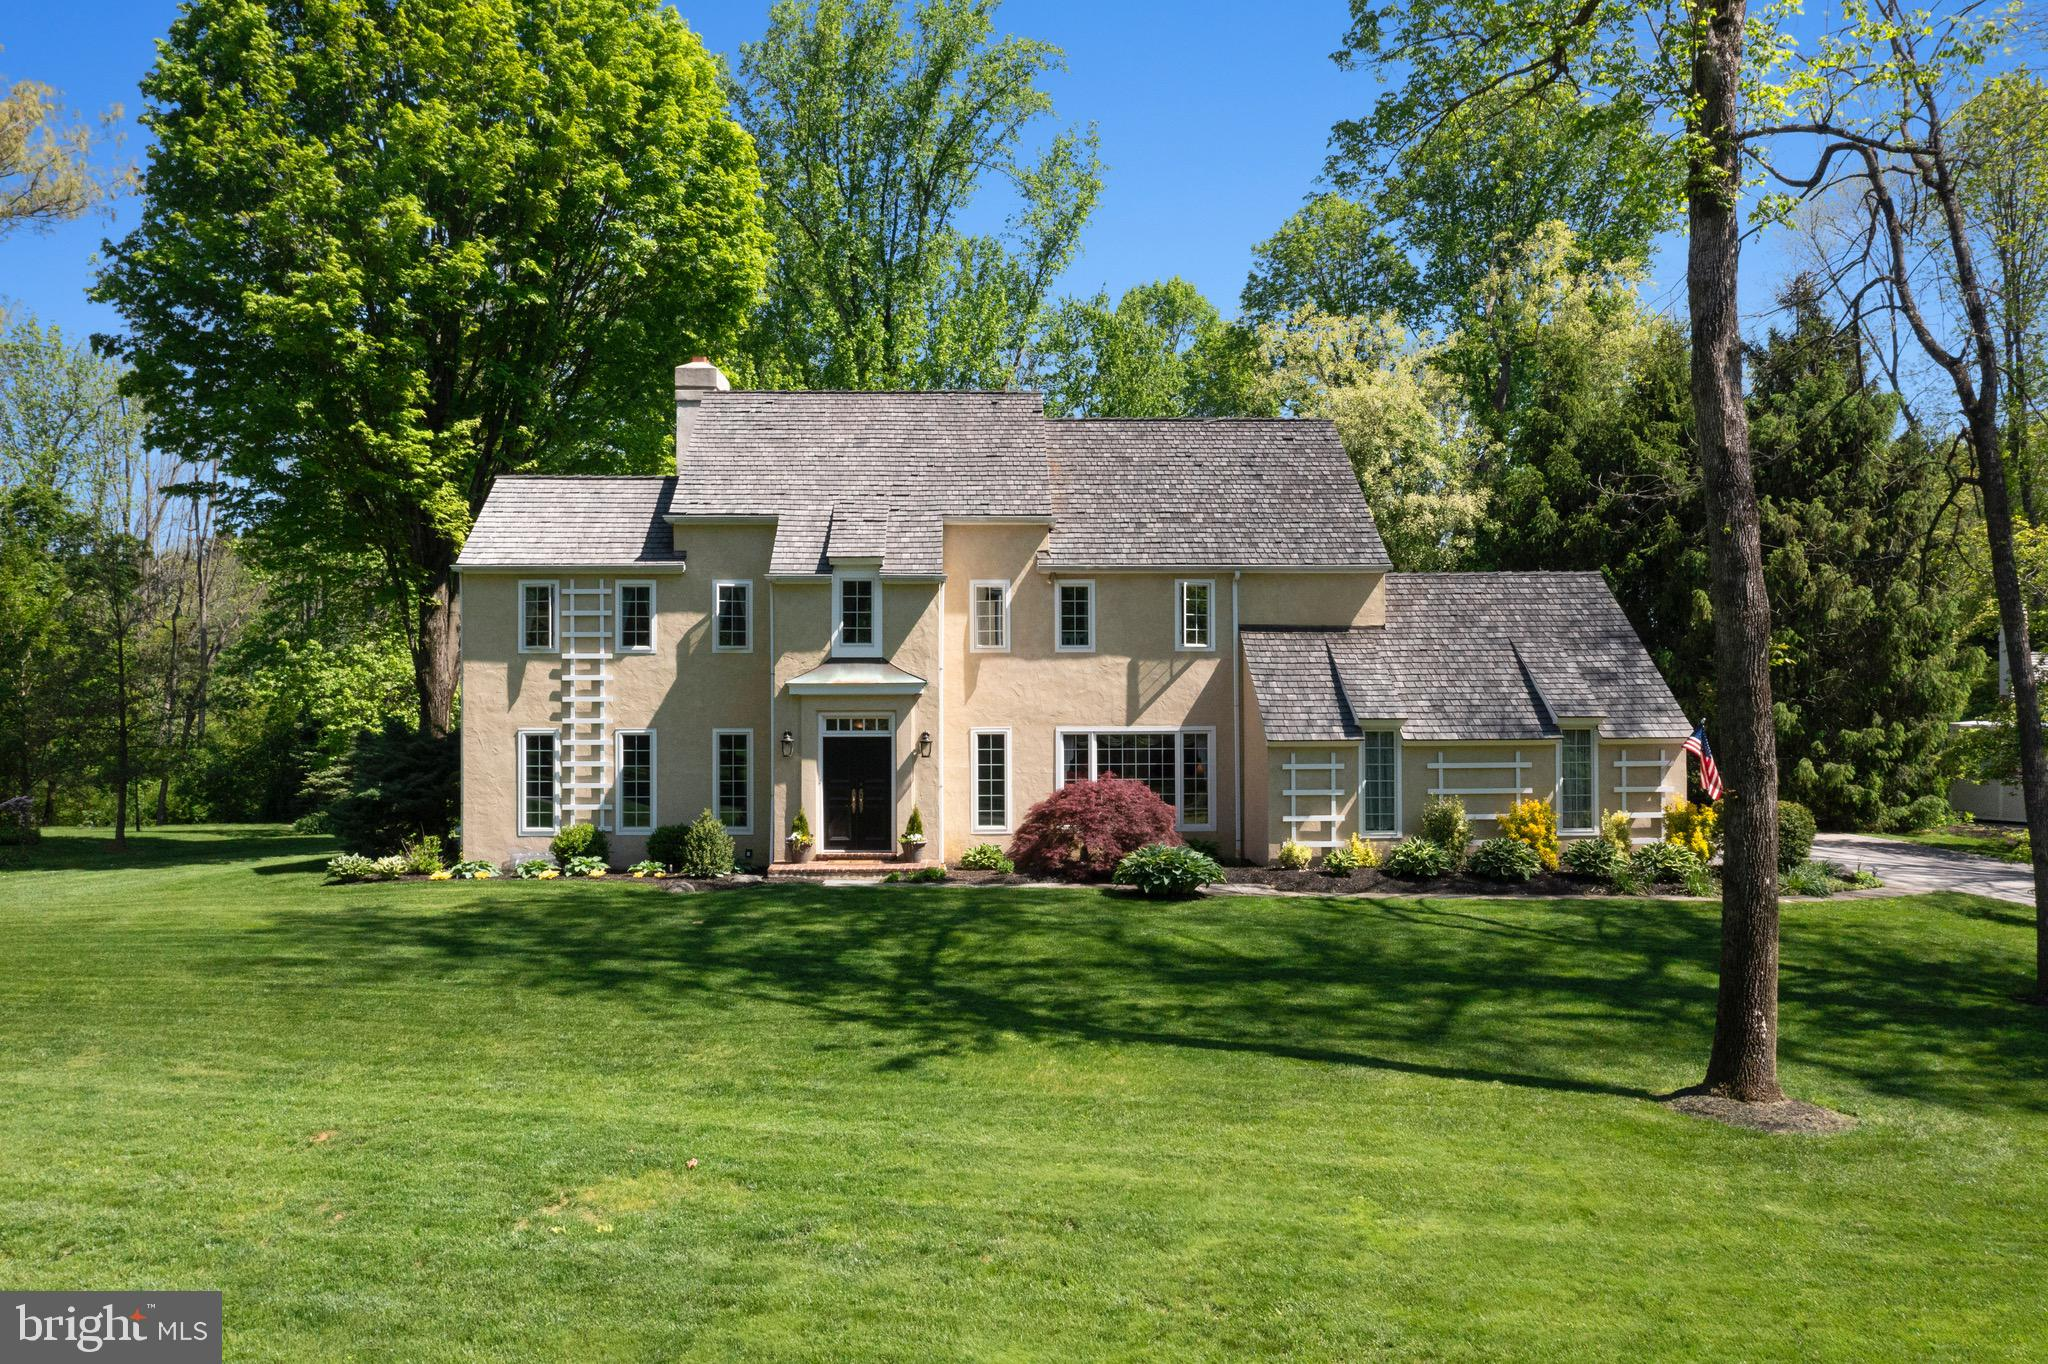 Welcome home to 406 Round Hill Rd, a lovingly maintained colonial in Radnor Township School District.  With over half an acre of flat and private manicured yard, this quiet and tucked away street in the Roundhill Development will have you falling in love. Through the two-story sunlit foyer entrance you will find a very spacious Dining Room with wood burning fireplace on your left, and a large sitting/Living Room on your right.  Walk into the open and updated Gourmet Kitchen complete with granite countertops, soapstone farmhouse sink, glass door cabinets & stainless steel appliances. The 2-story family room provides even more sunlight with its dual skylights and vaulted ceiling, also complete with a wood burning corner fireplace. A stylishly updated powder room completes the first floor. Up to the second floor (which has been recently fully re-carpeted) you will find a good sized Master Bedroom with walk-in closet, updated ensuite Full Bath and 3 other bedrooms each with its own closet space.  You will also find another beautifully updated hall Full Bath on this floor. Other updates include a gorgeous fully finished basement which could be used as a home office, extra hang out space or tons of storage. Brand new windows throughout house,  a yard that is bordering The Willows and a short walk to the nature preserve pond,  you don't want to miss this beauty in coveted Radnor Township!